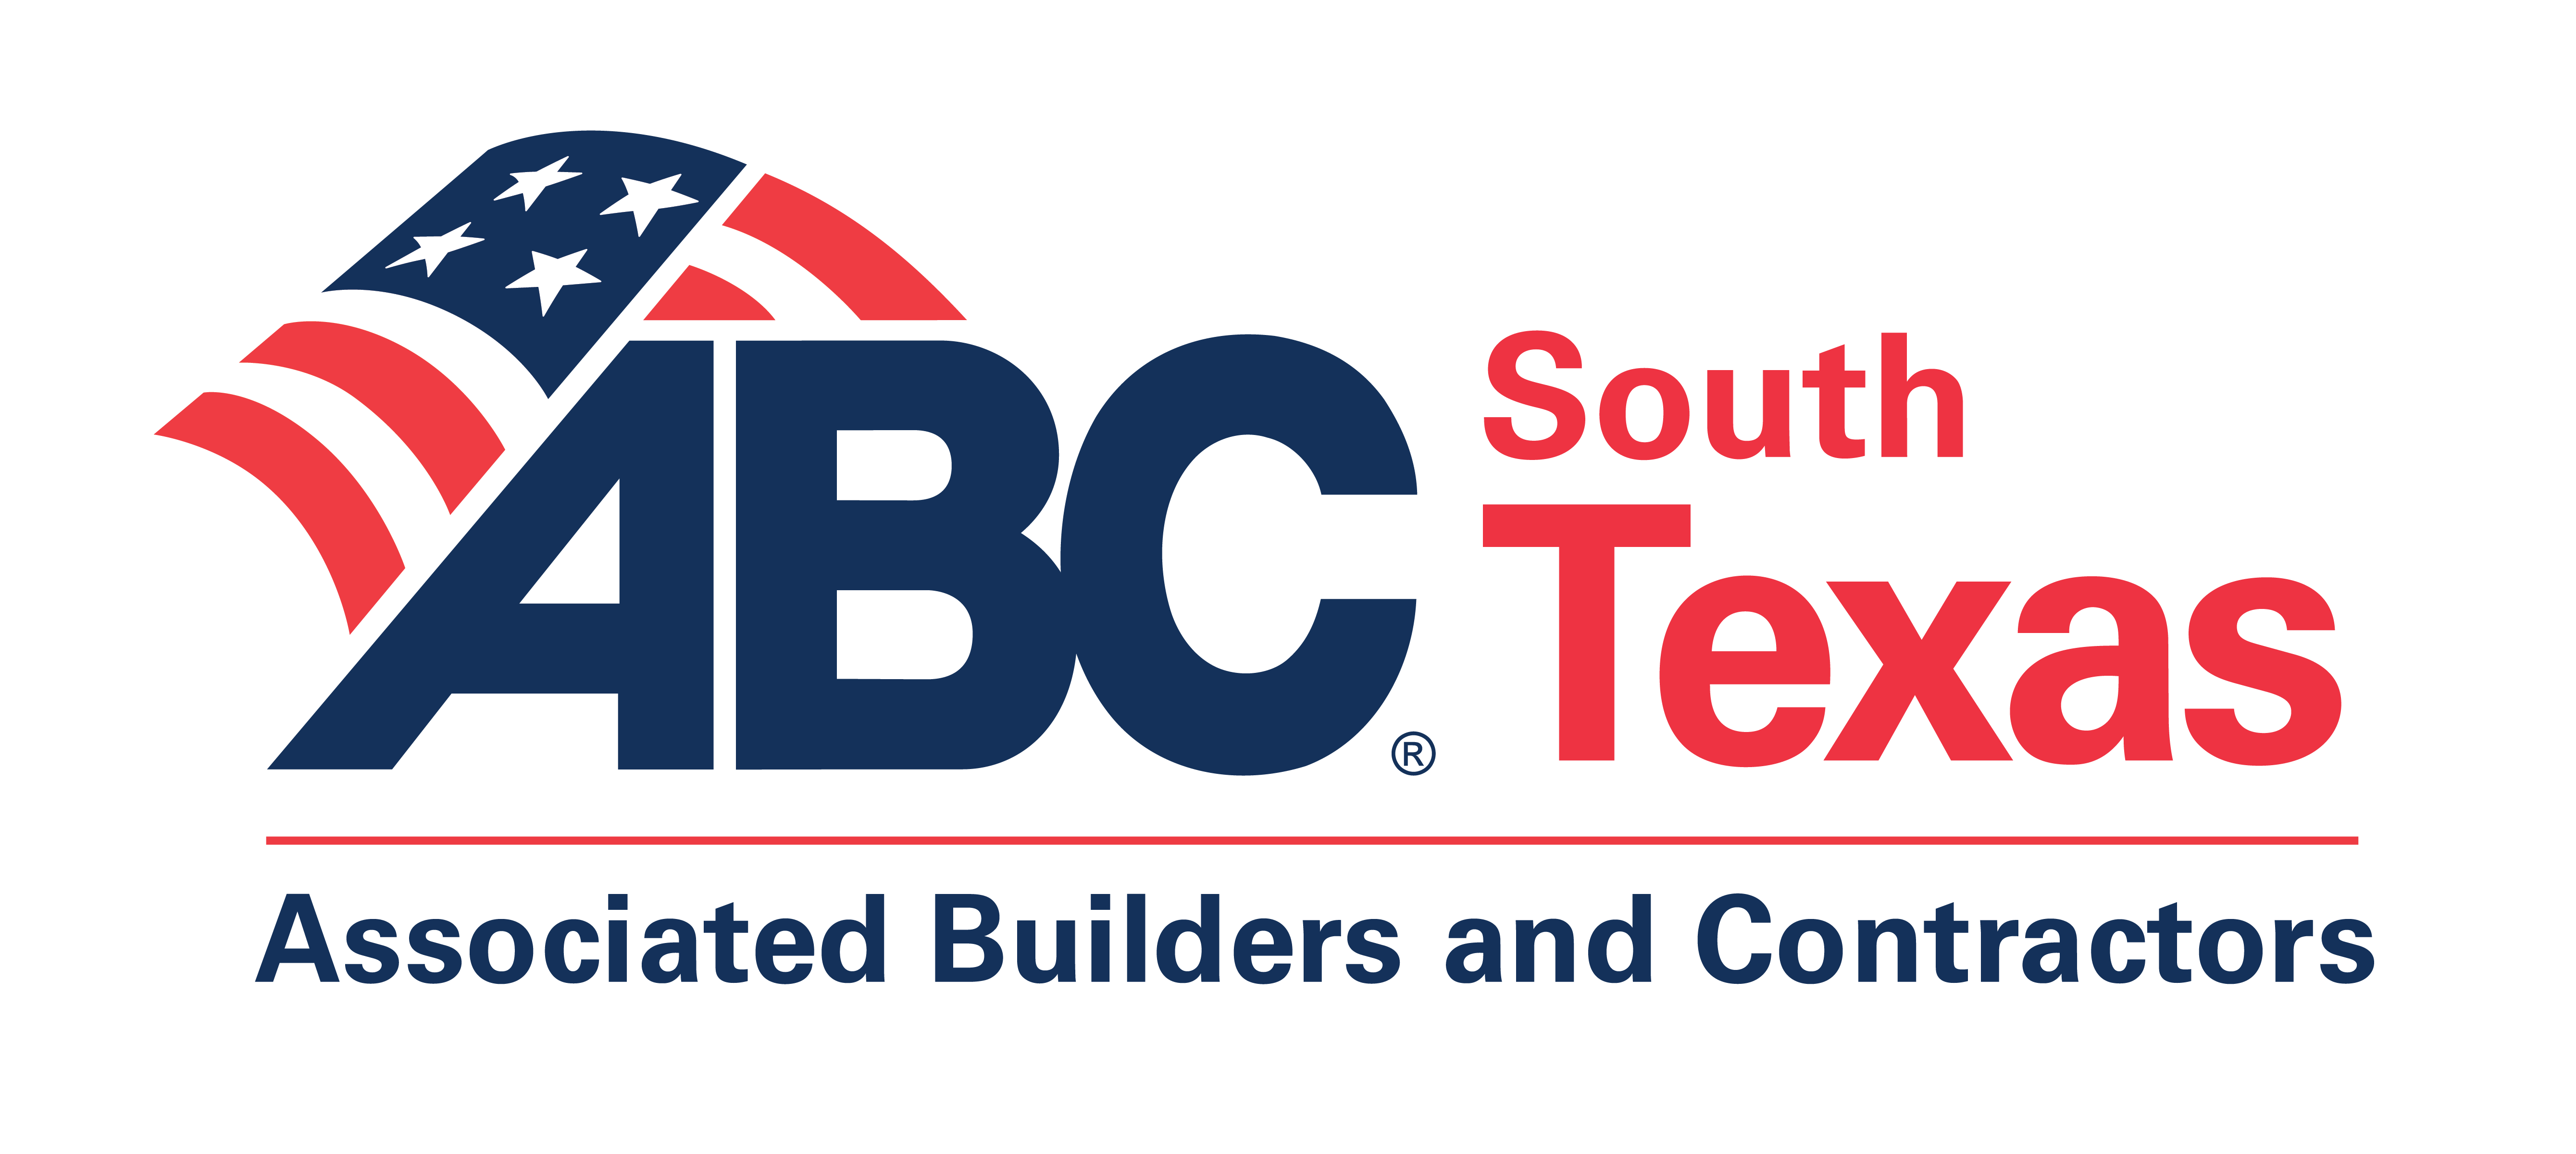 ABC South Texas Chapter